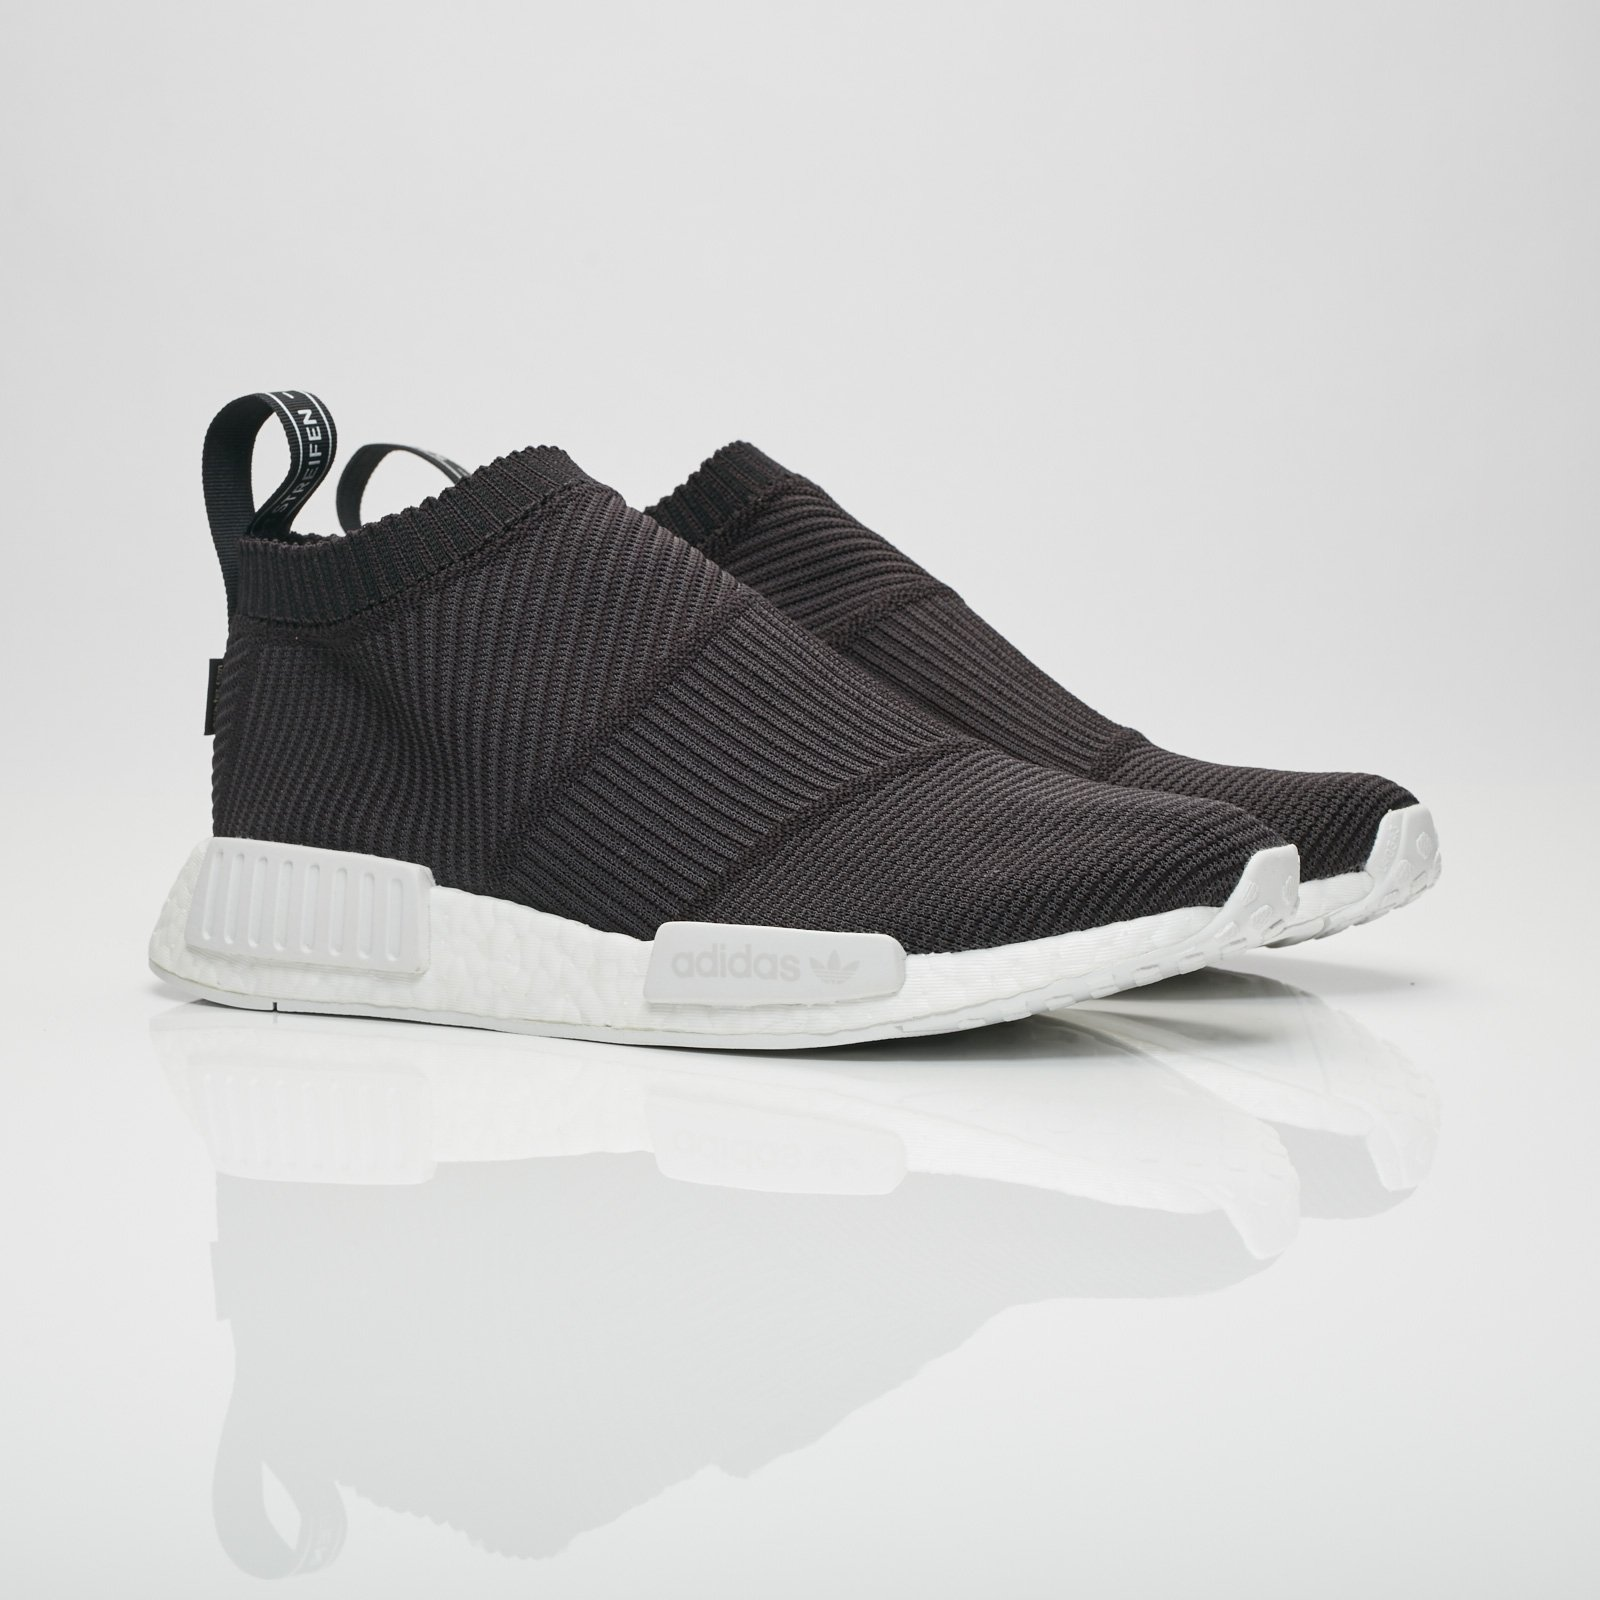 fd1137019 adidas NMD Gore-tex Primeknit - By9405 - Sneakersnstuff